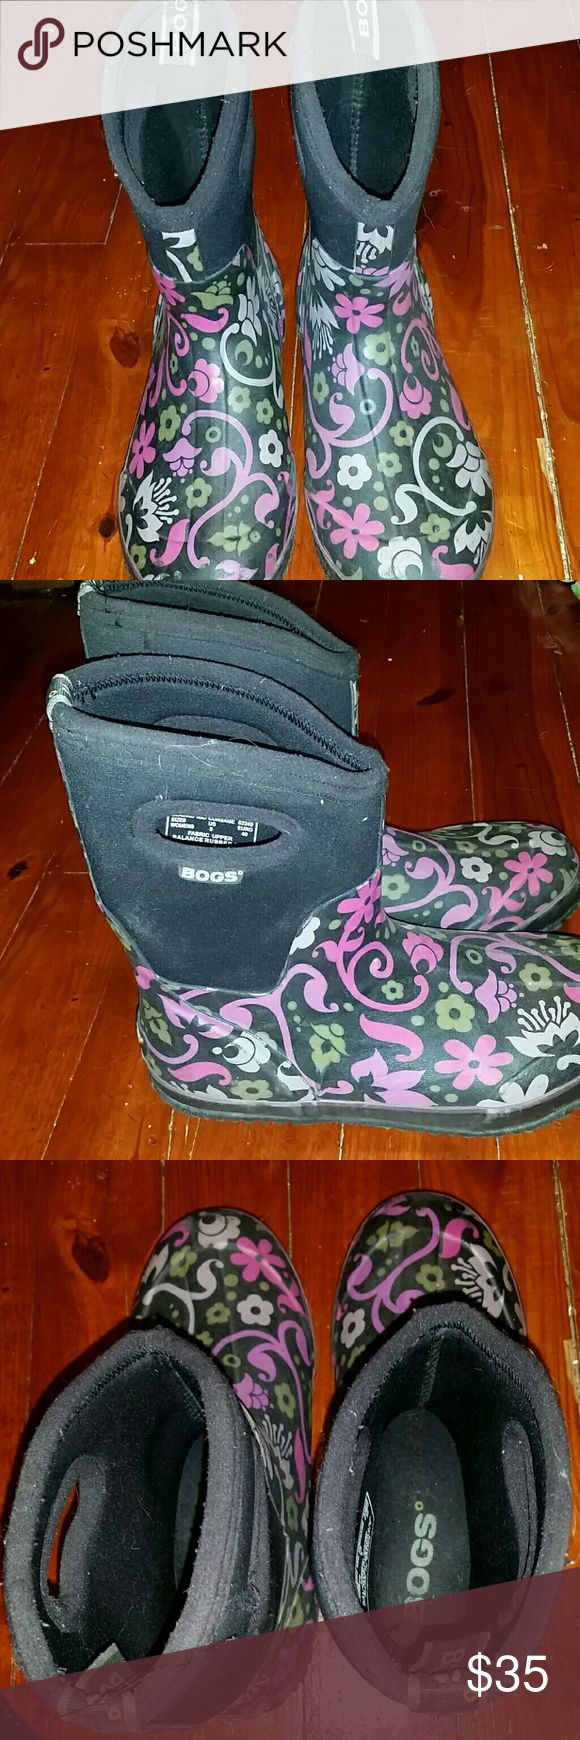 Bogs Winter Boots Gently worn. These boots are super warm and keep your feet really dry. There is a small snag on the one boot (I included a picture). Bogs Shoes Winter & Rain Boots